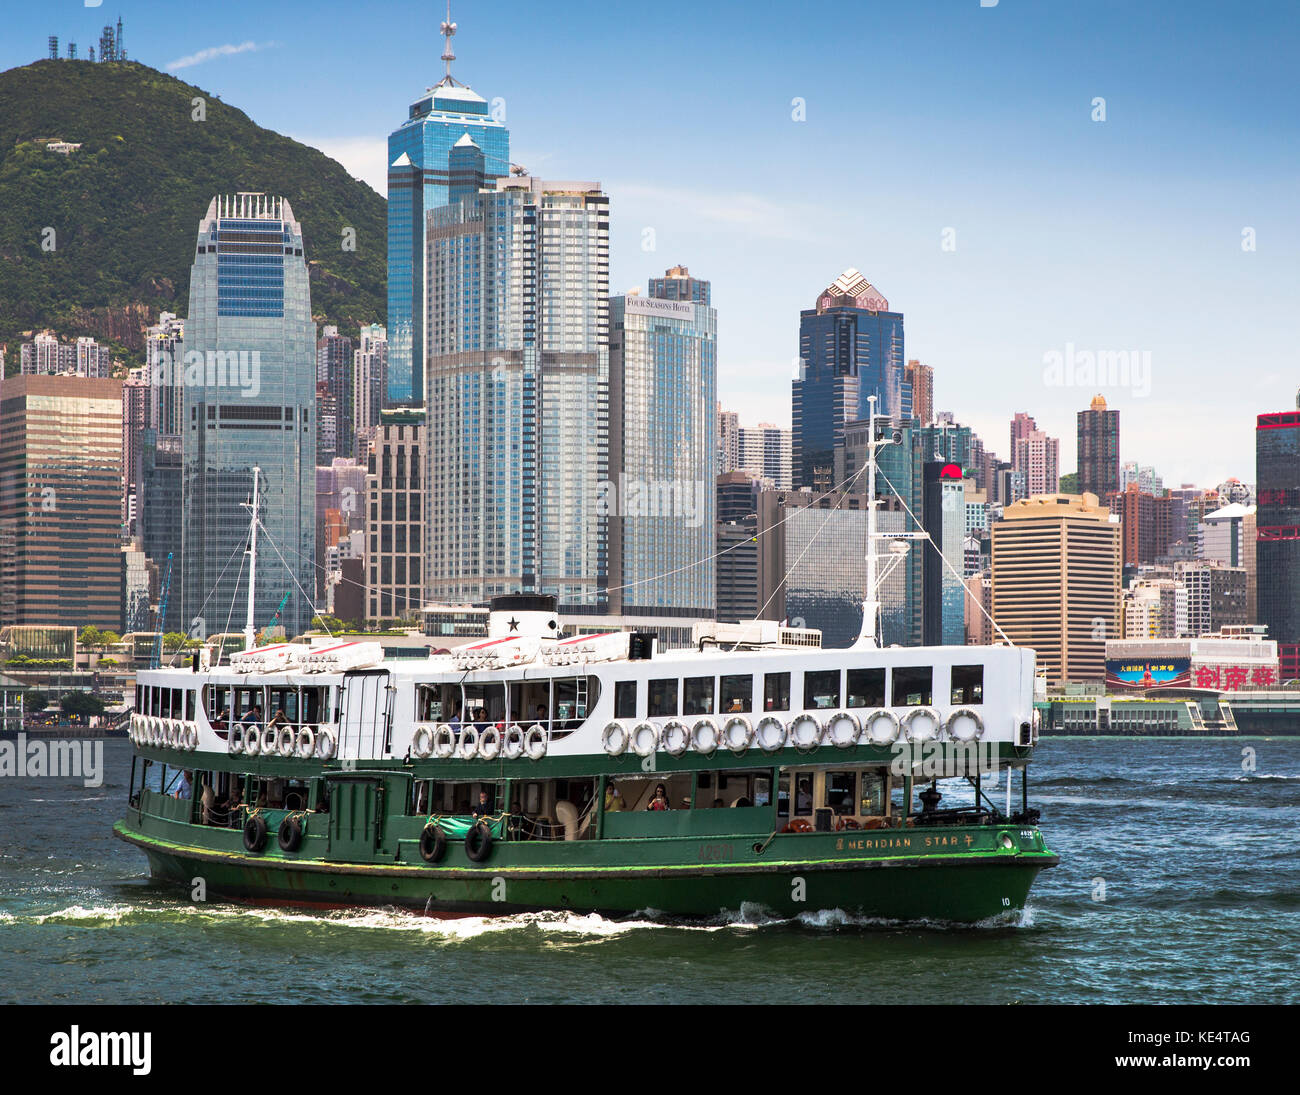 Hong Kong, SAR, China - 31 May 2013: Star Ferry Crossing Victoria Harbour from Central on Hong Kong Island to Tsim - Stock Image